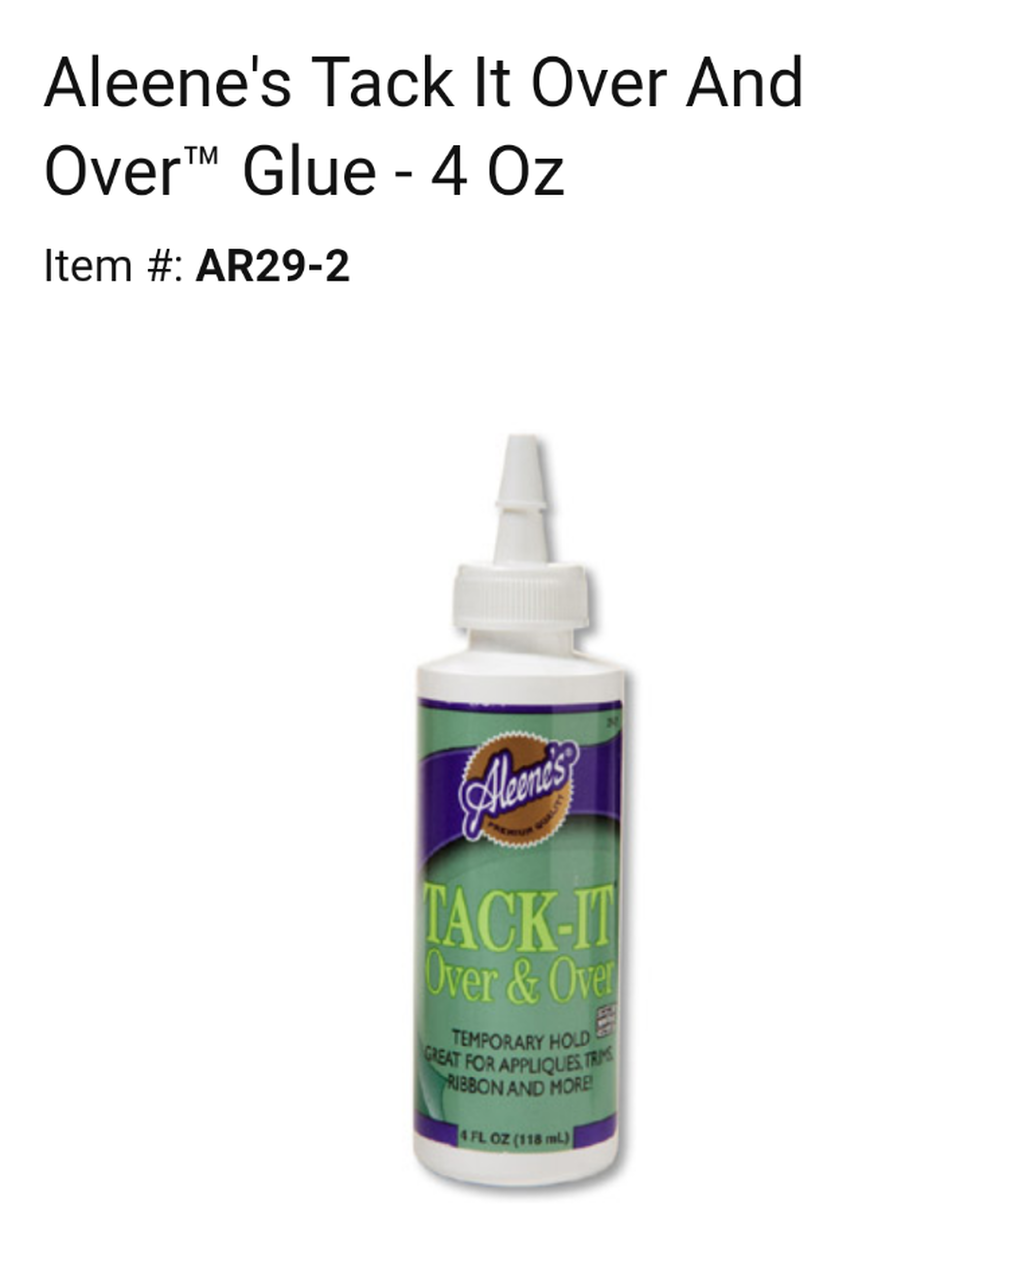 Aleene's Tack It Over and Over Glue 4 Oz